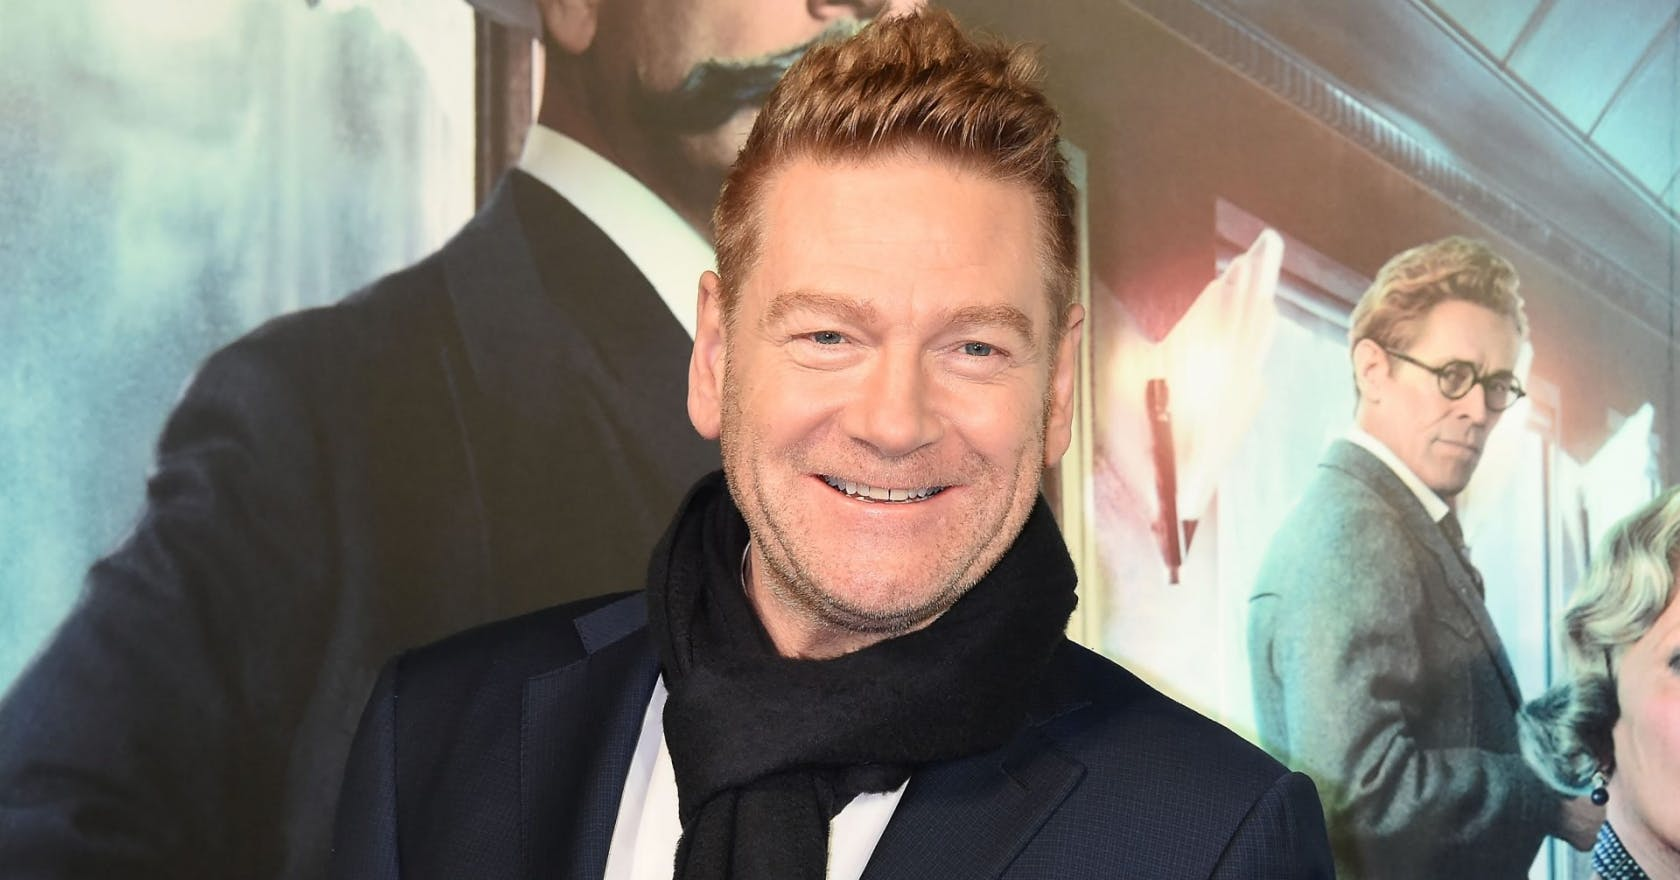 Kenneth Branagh will play Boris Johnson in a new coronavirus drama, and people have thoughts